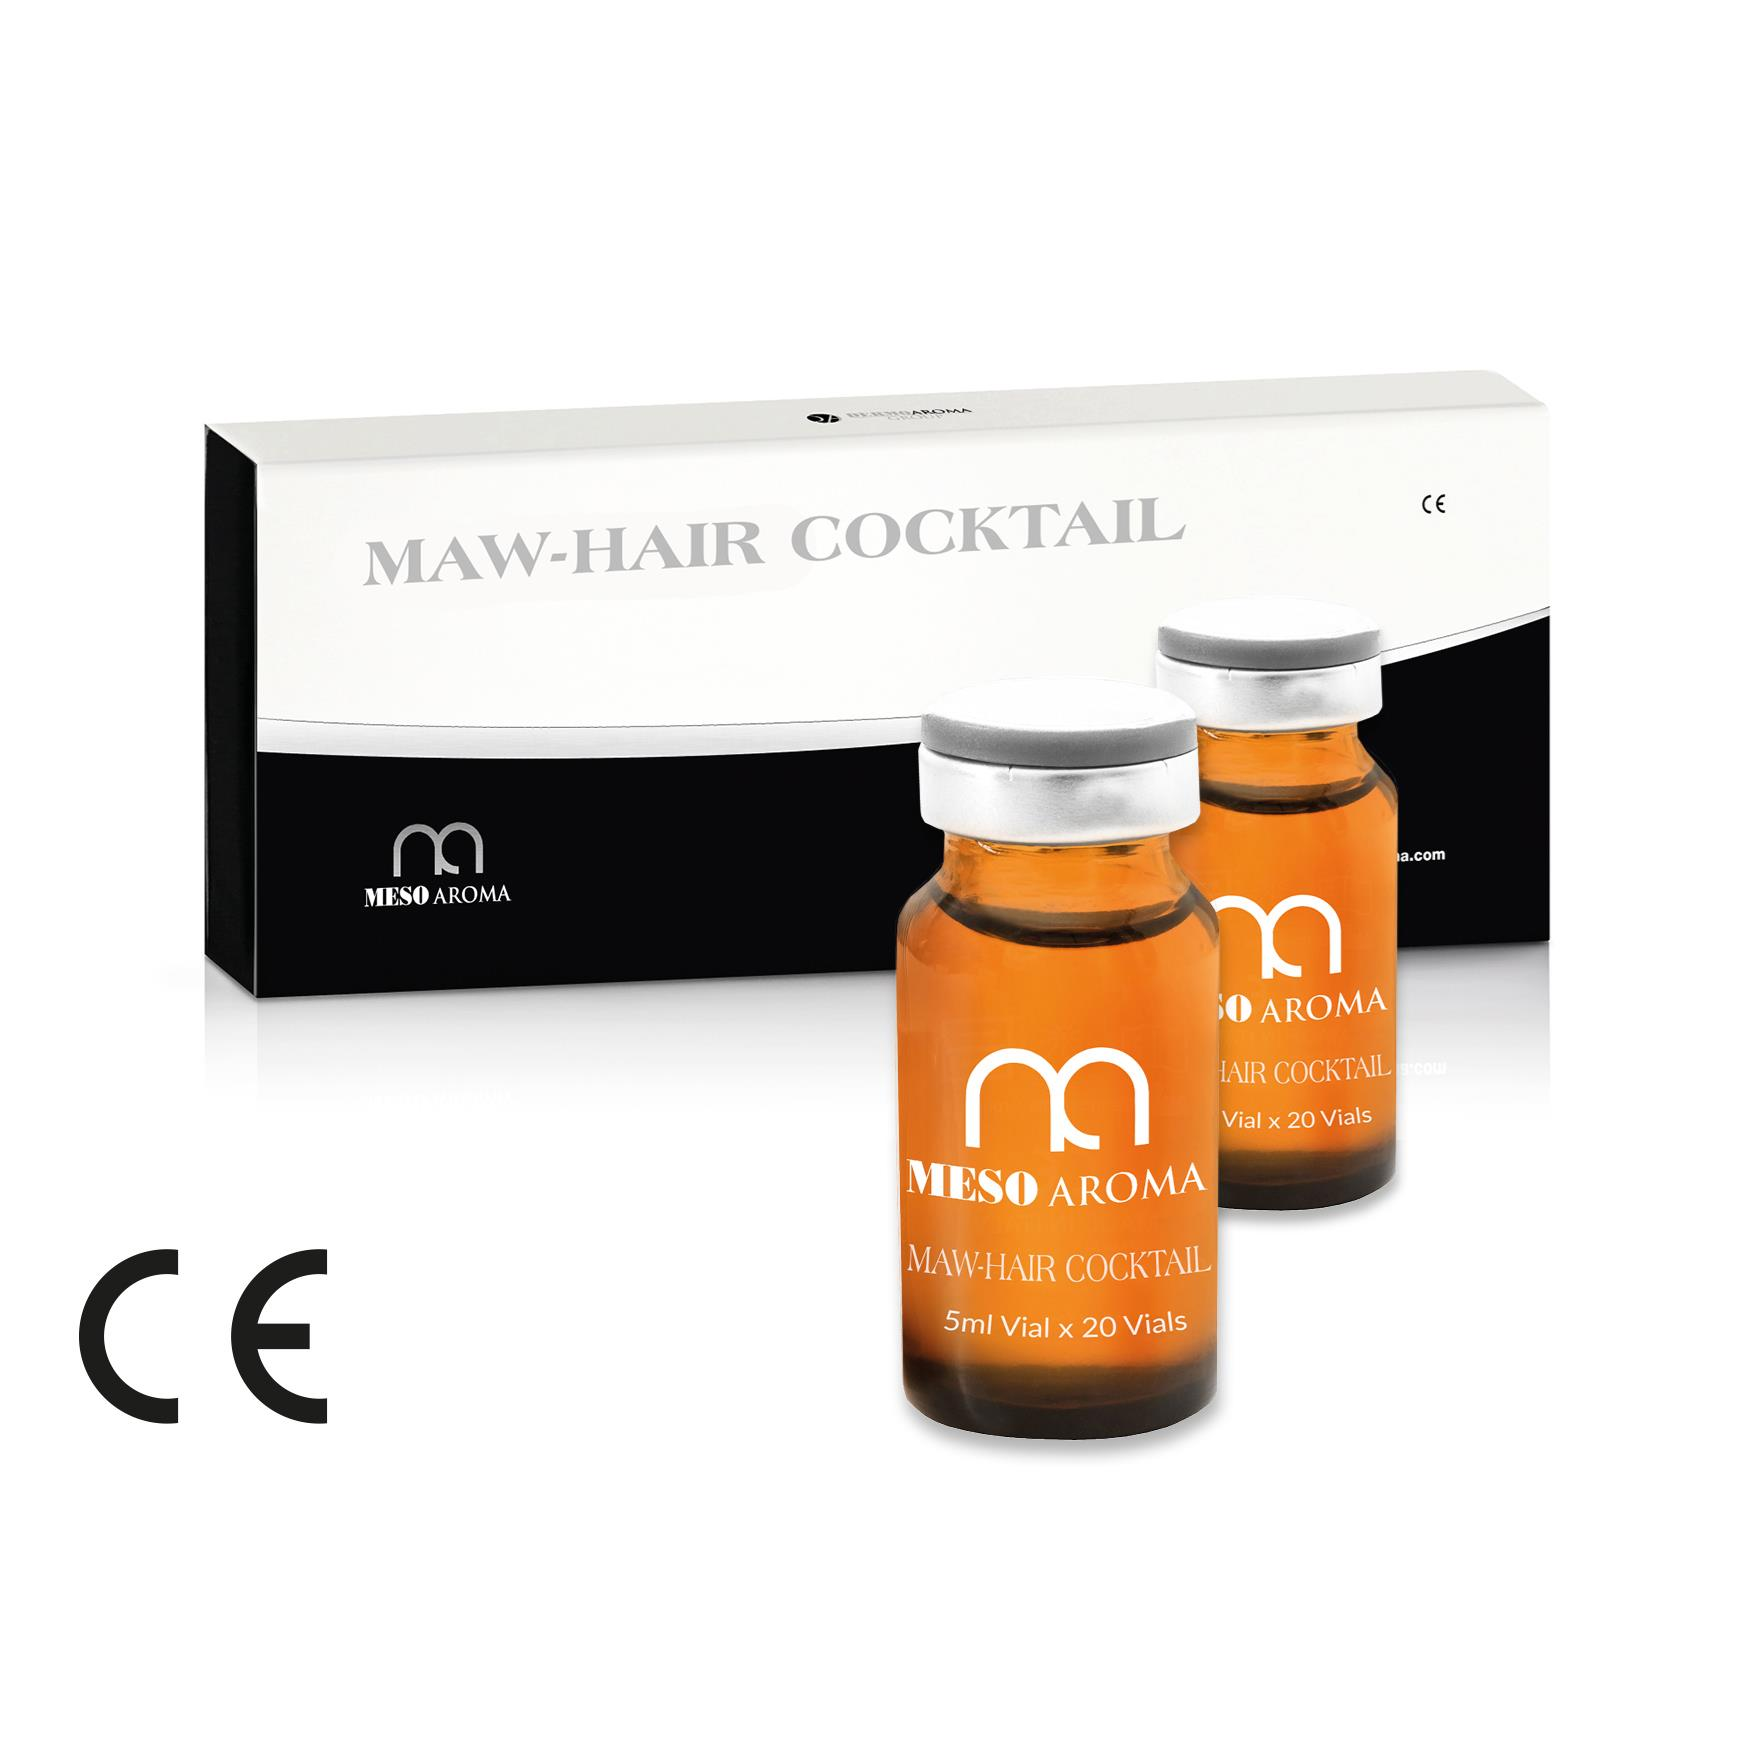 ampulka-do-mezoterapii-skory-glowy-wlosy-hair-cocktail-5ml